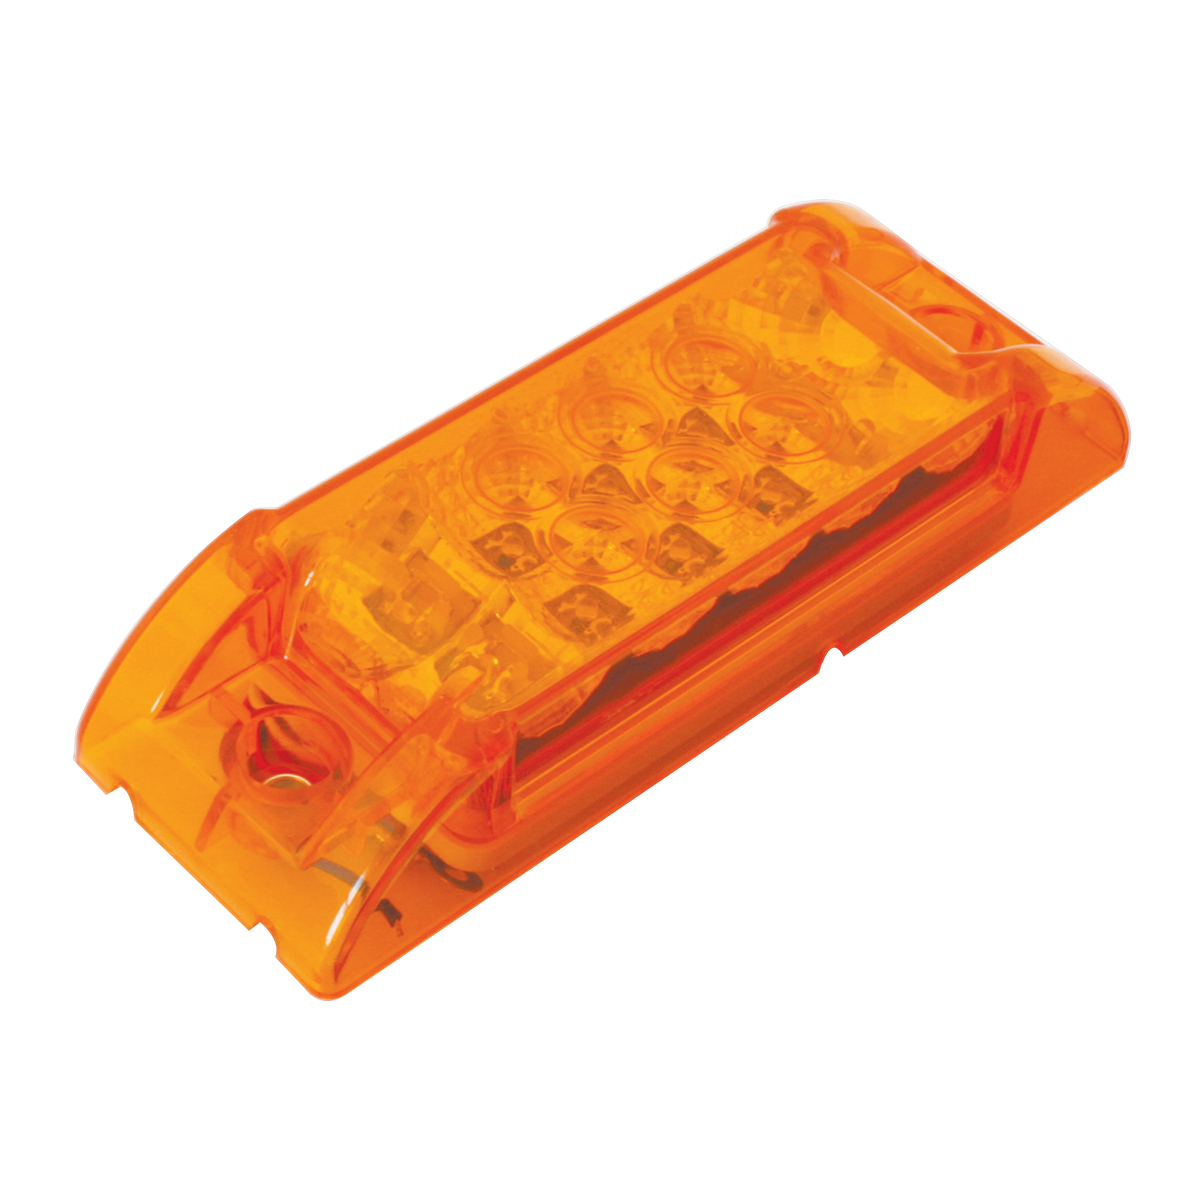 76210 Rectangular Wide Angle Spyder LED Marker Light in Amber/Amber